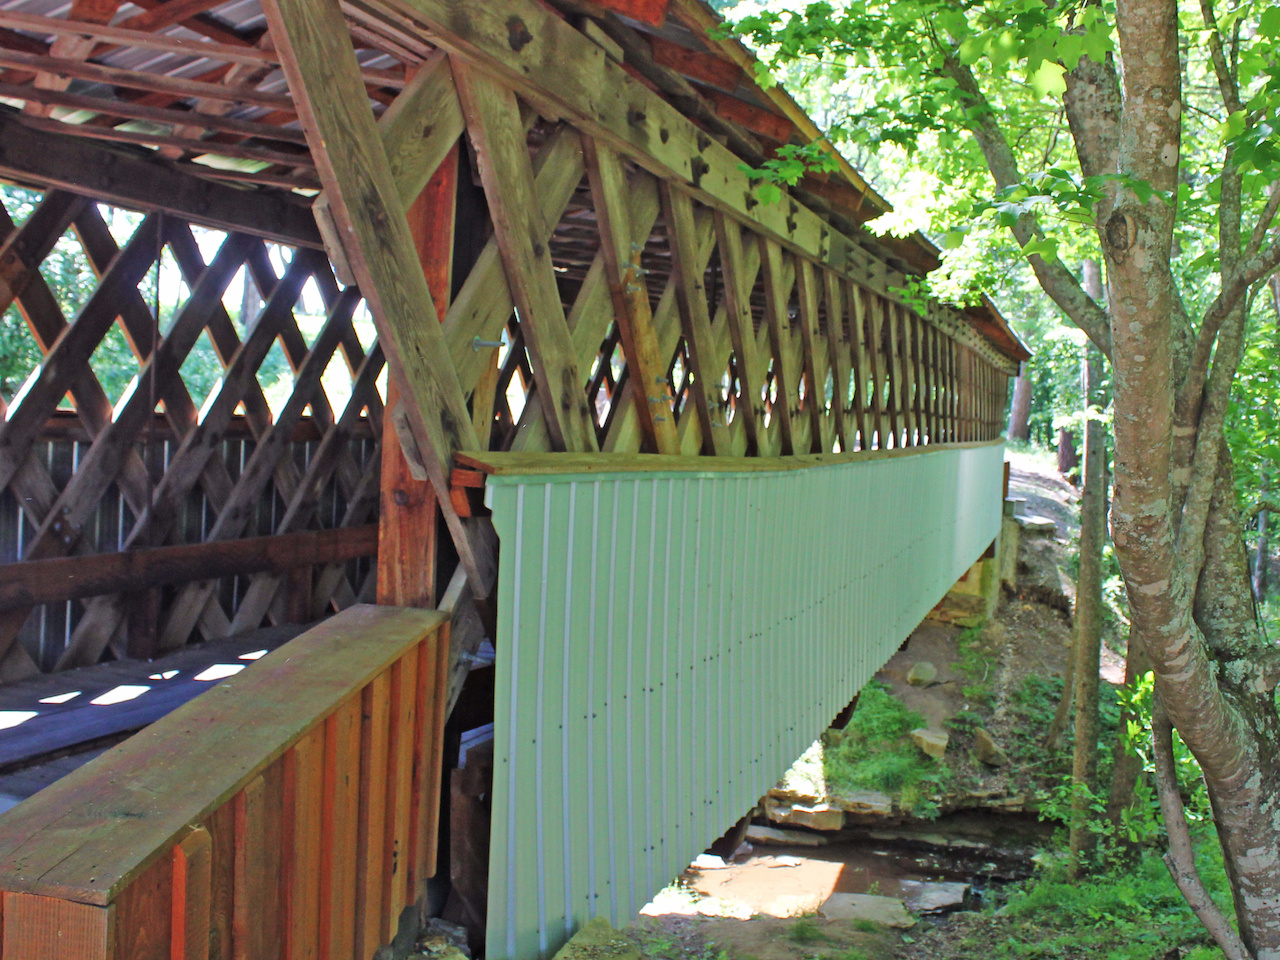 Old Easley Bridge has been in continuous use since it was constructed in 1927, save a few small repairs.